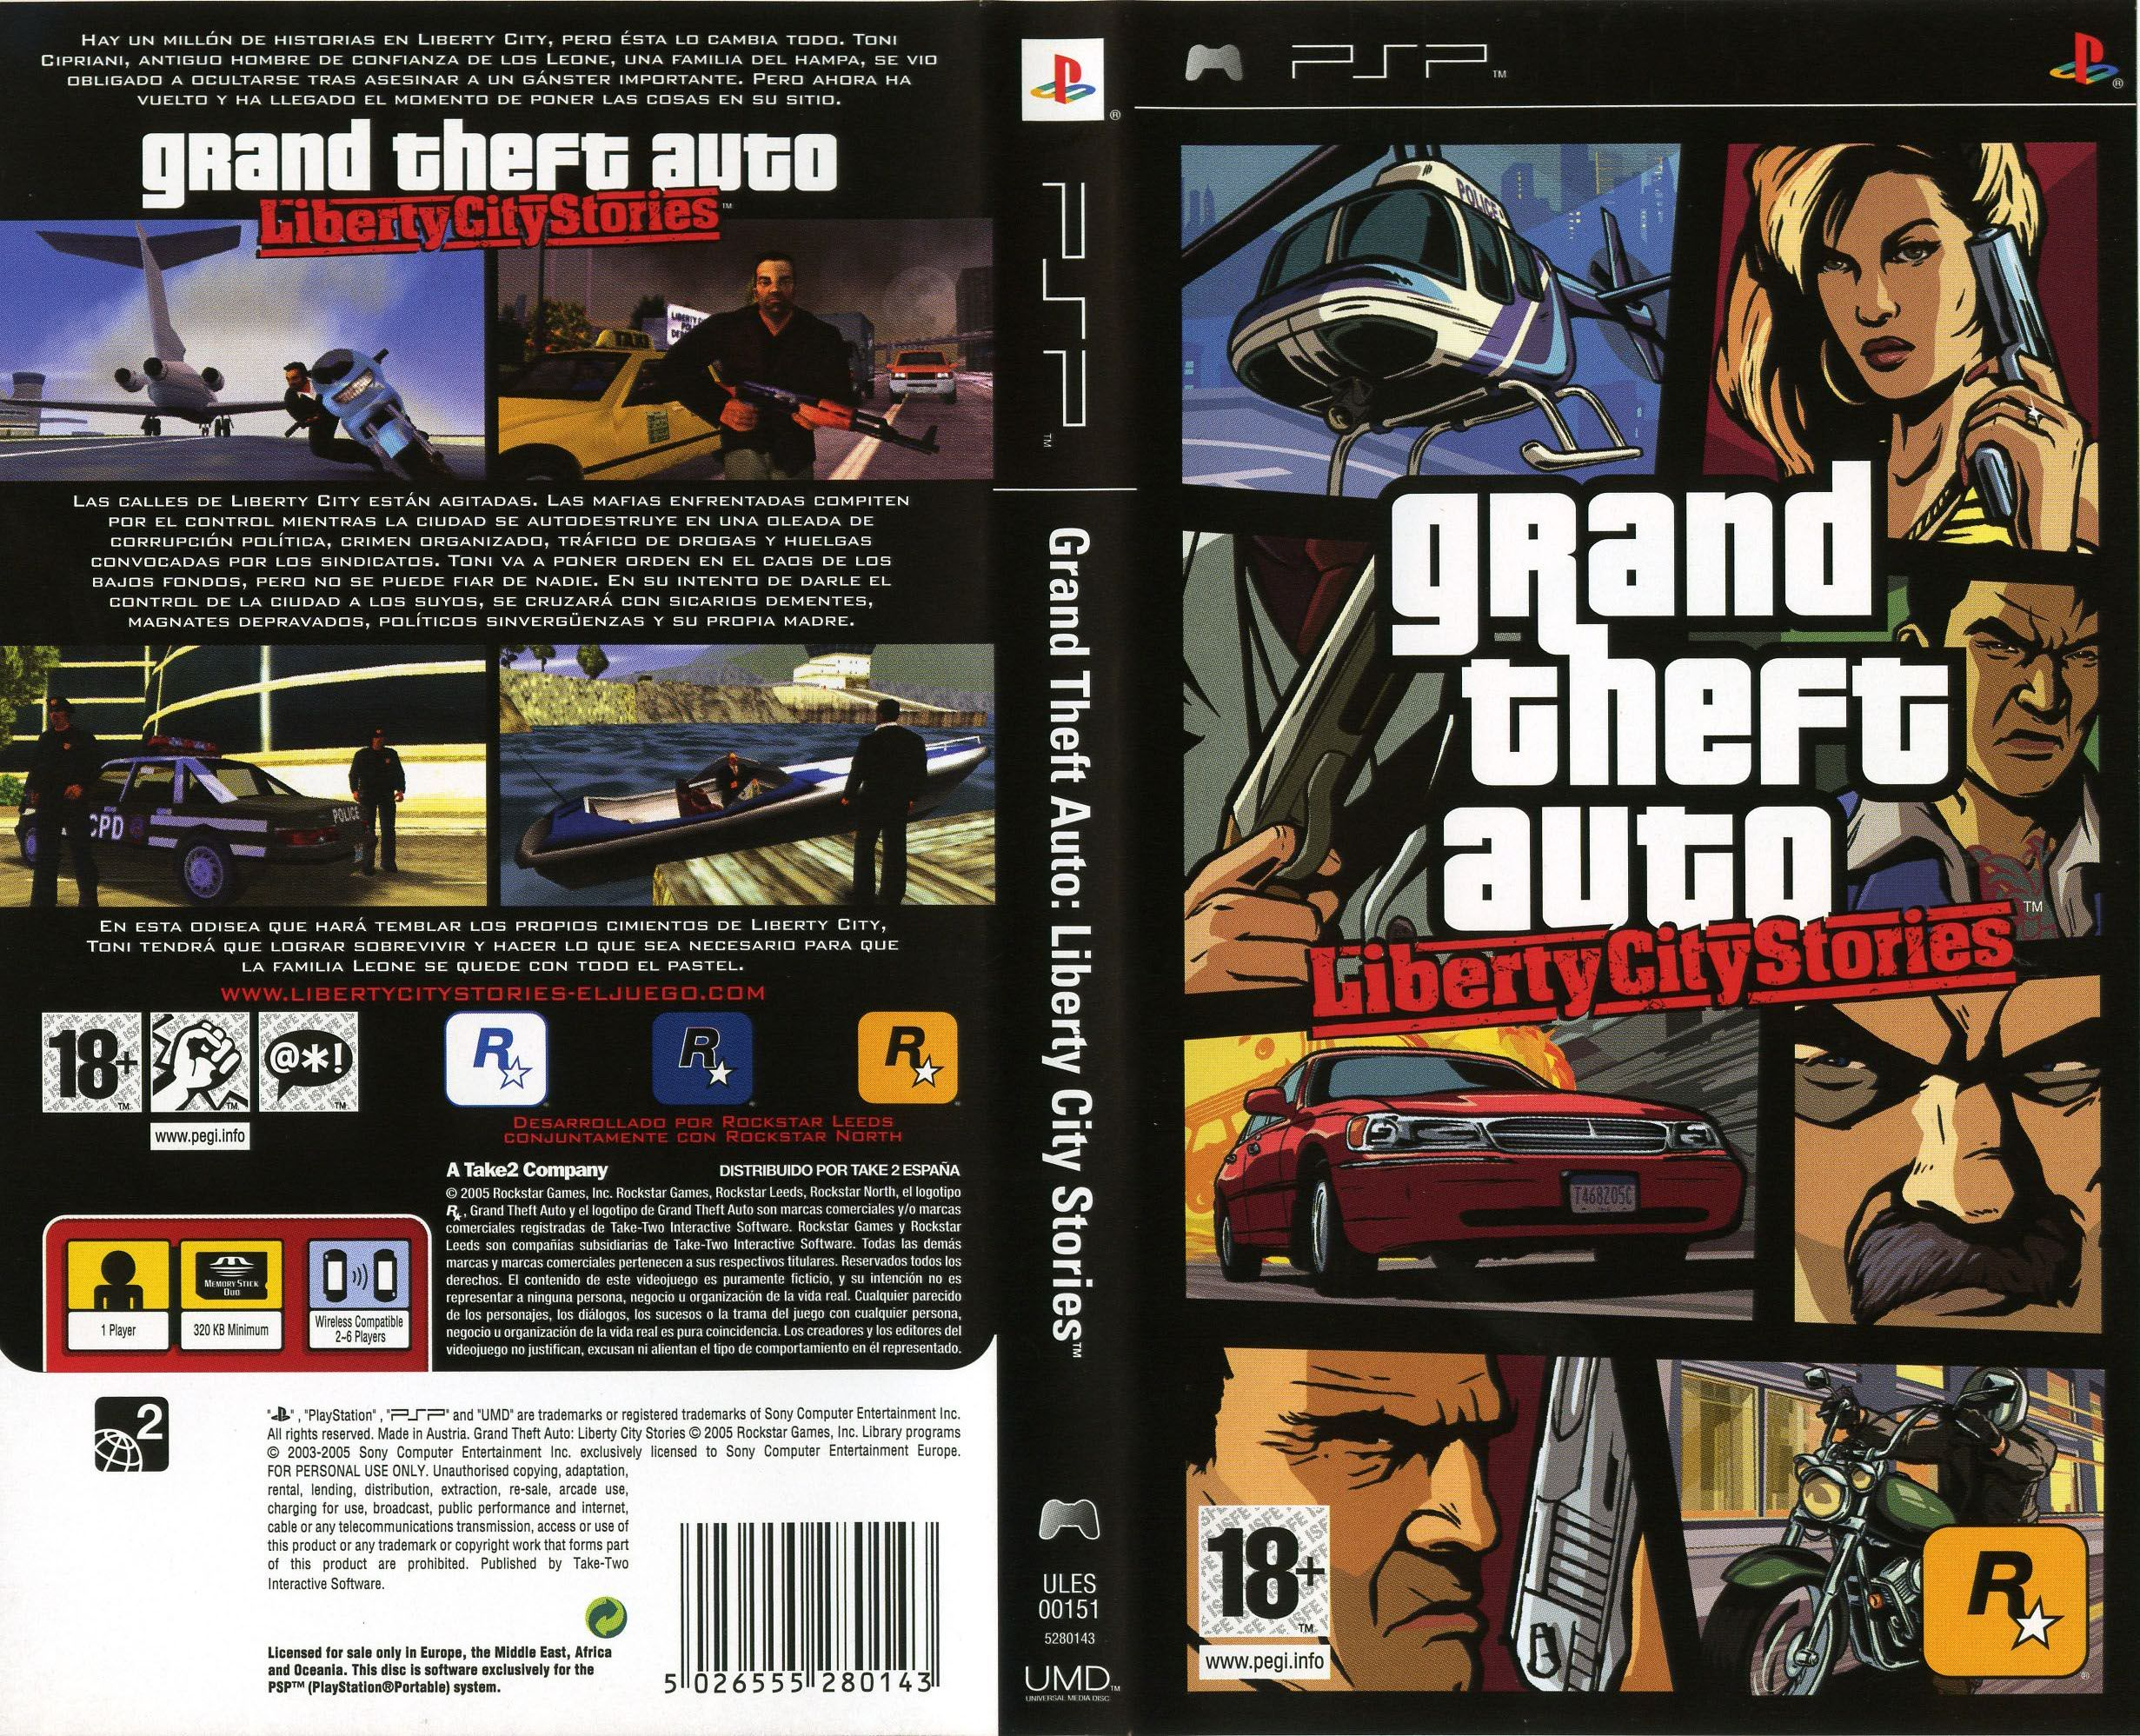 descargar grand theft auto liberty city stories para psp